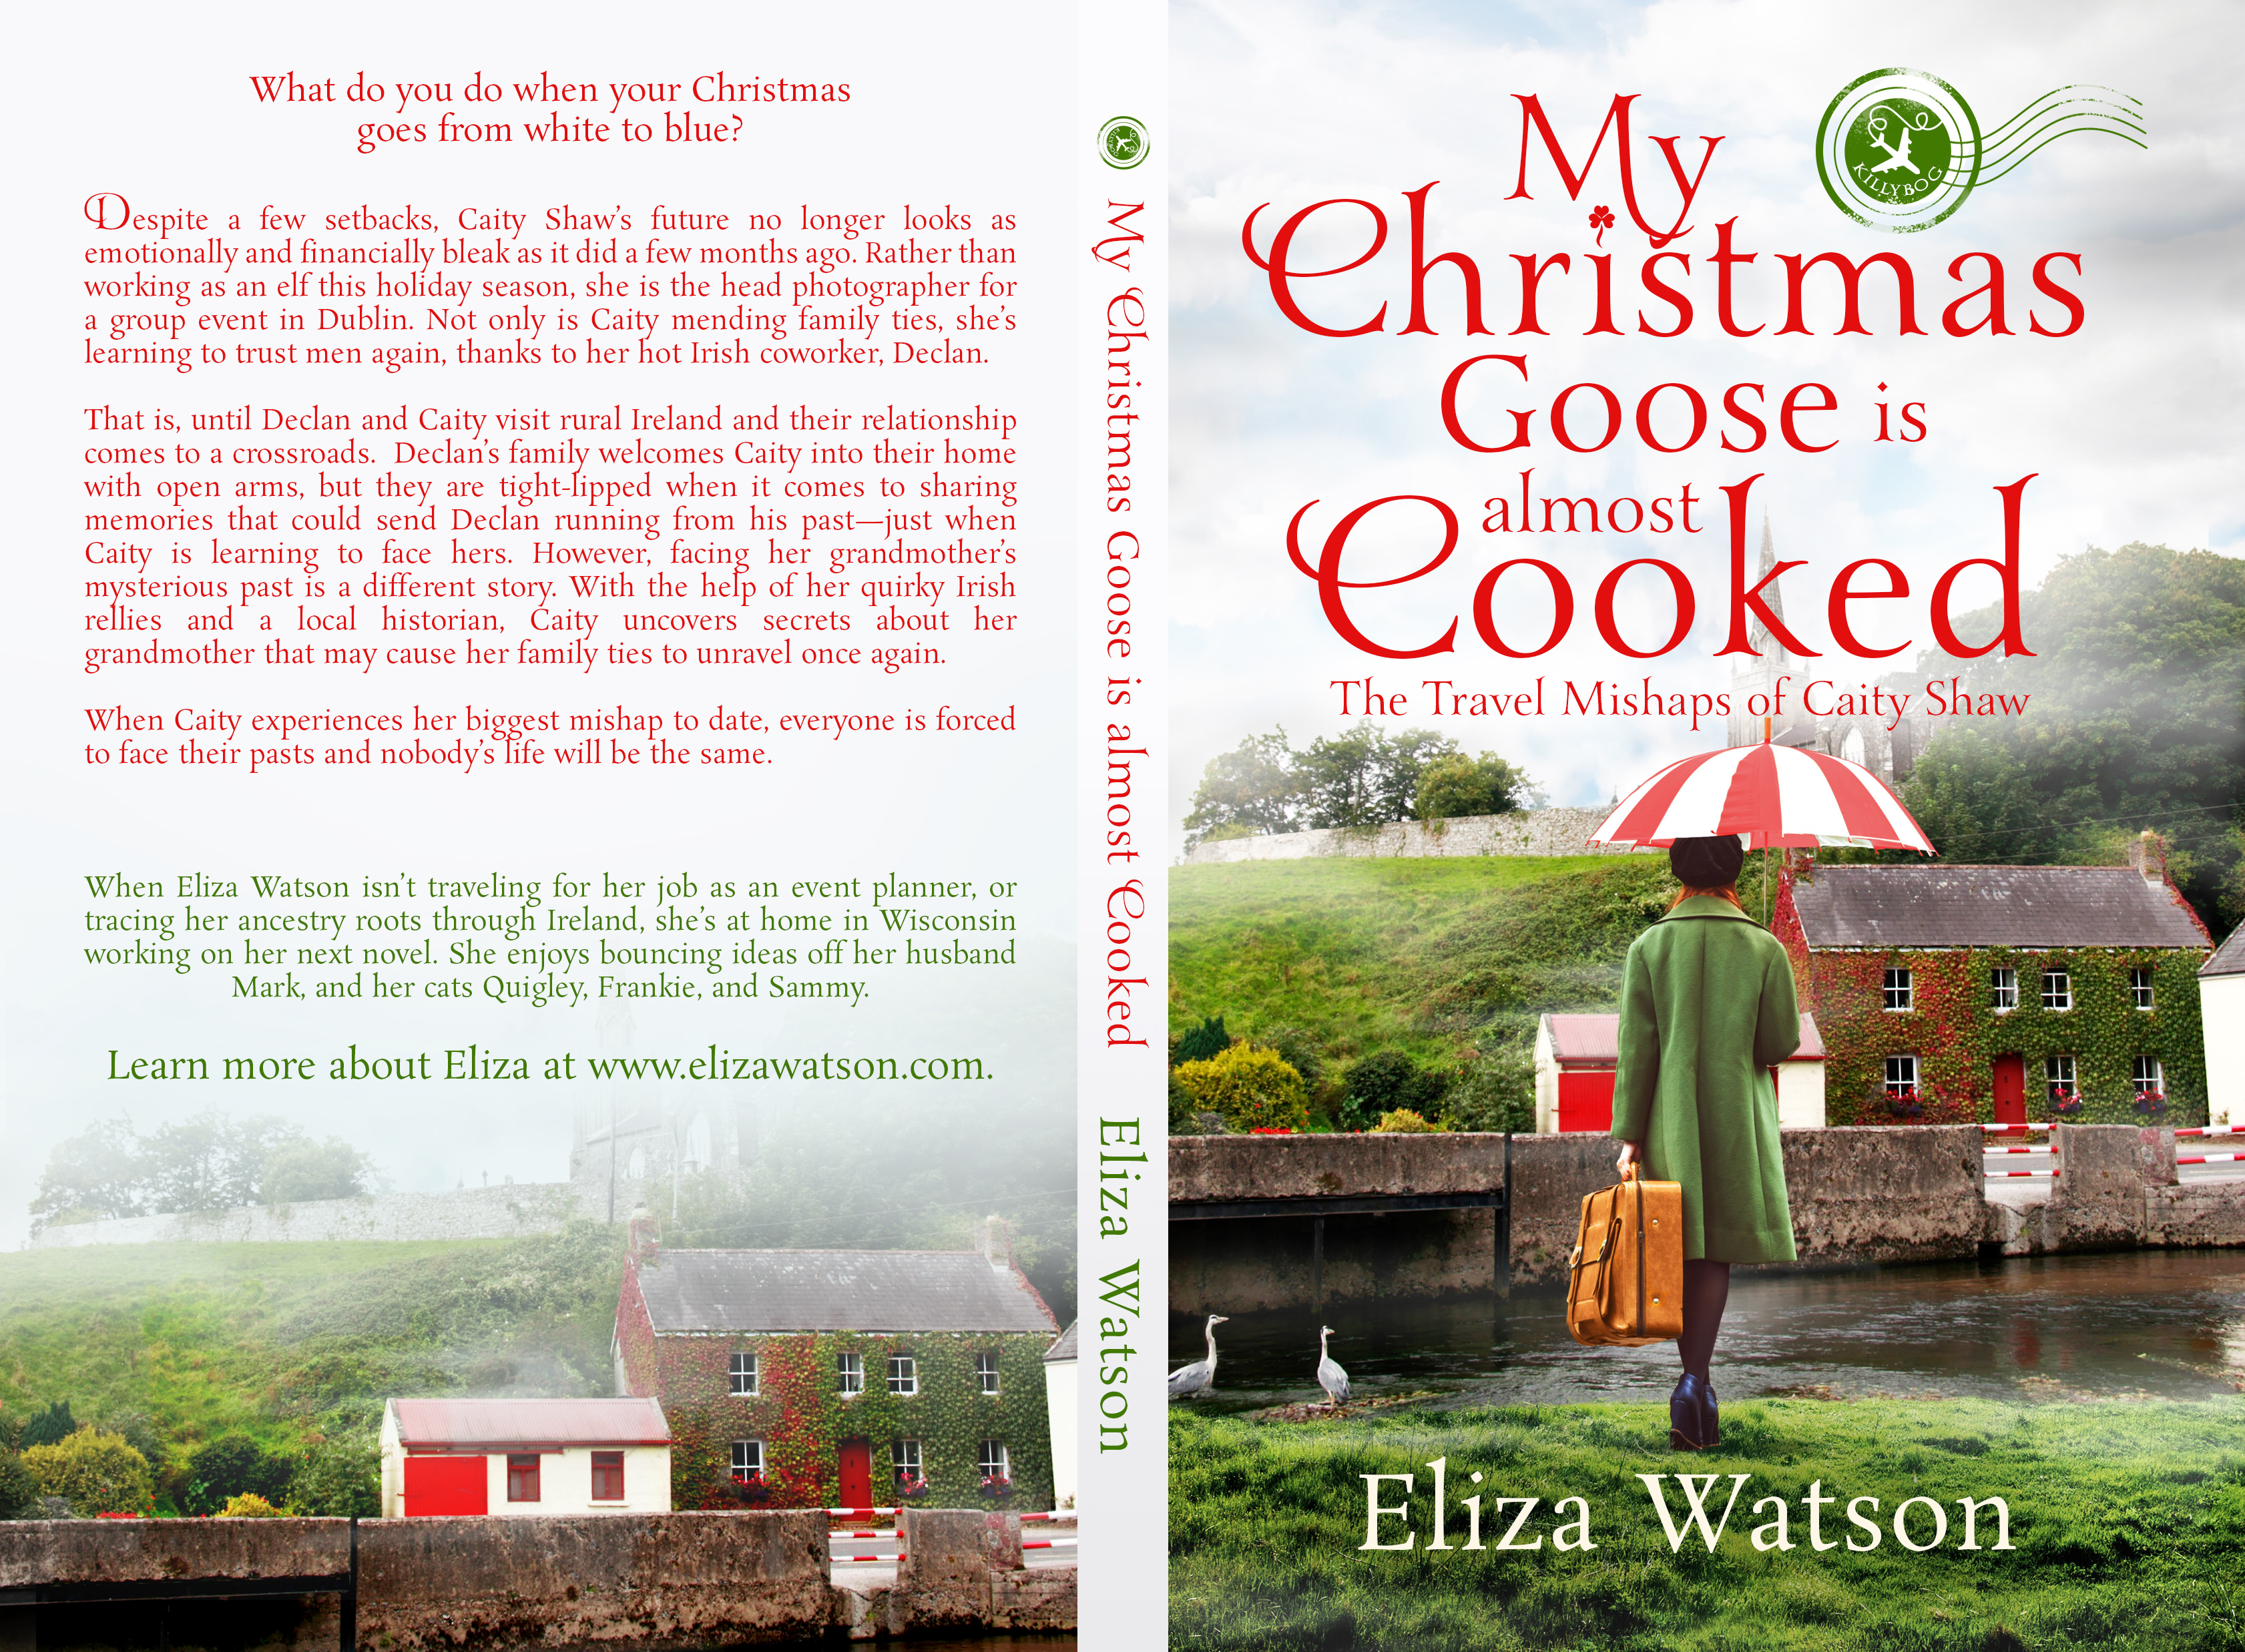 My Christmas Goose is Almost Cooked full 5_25 by 8 at 204 pages